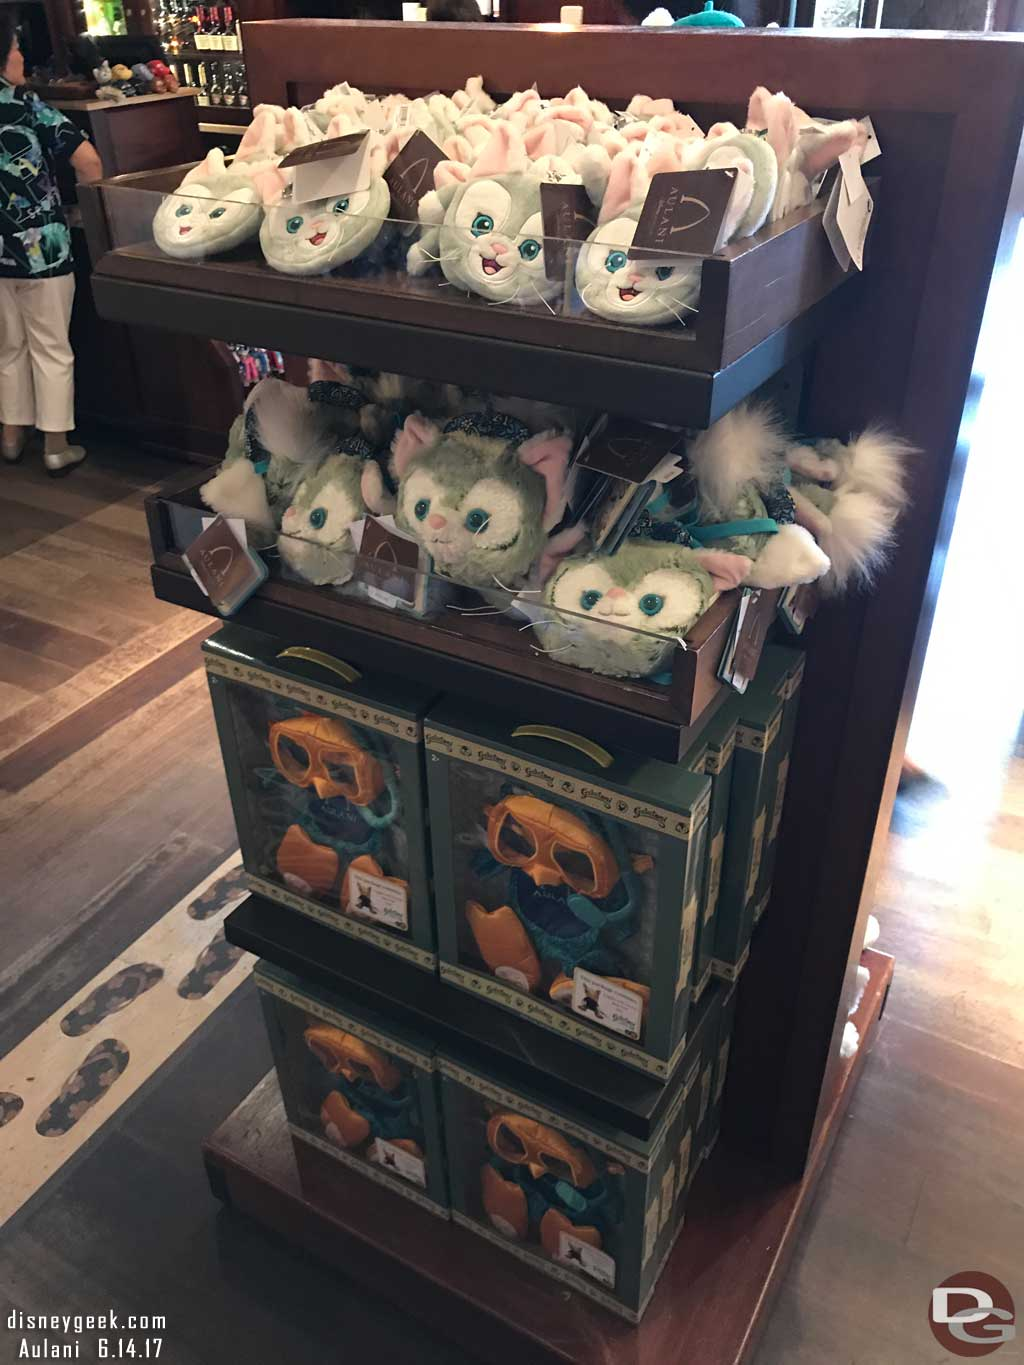 Gelatoni Merchandise at Aulani